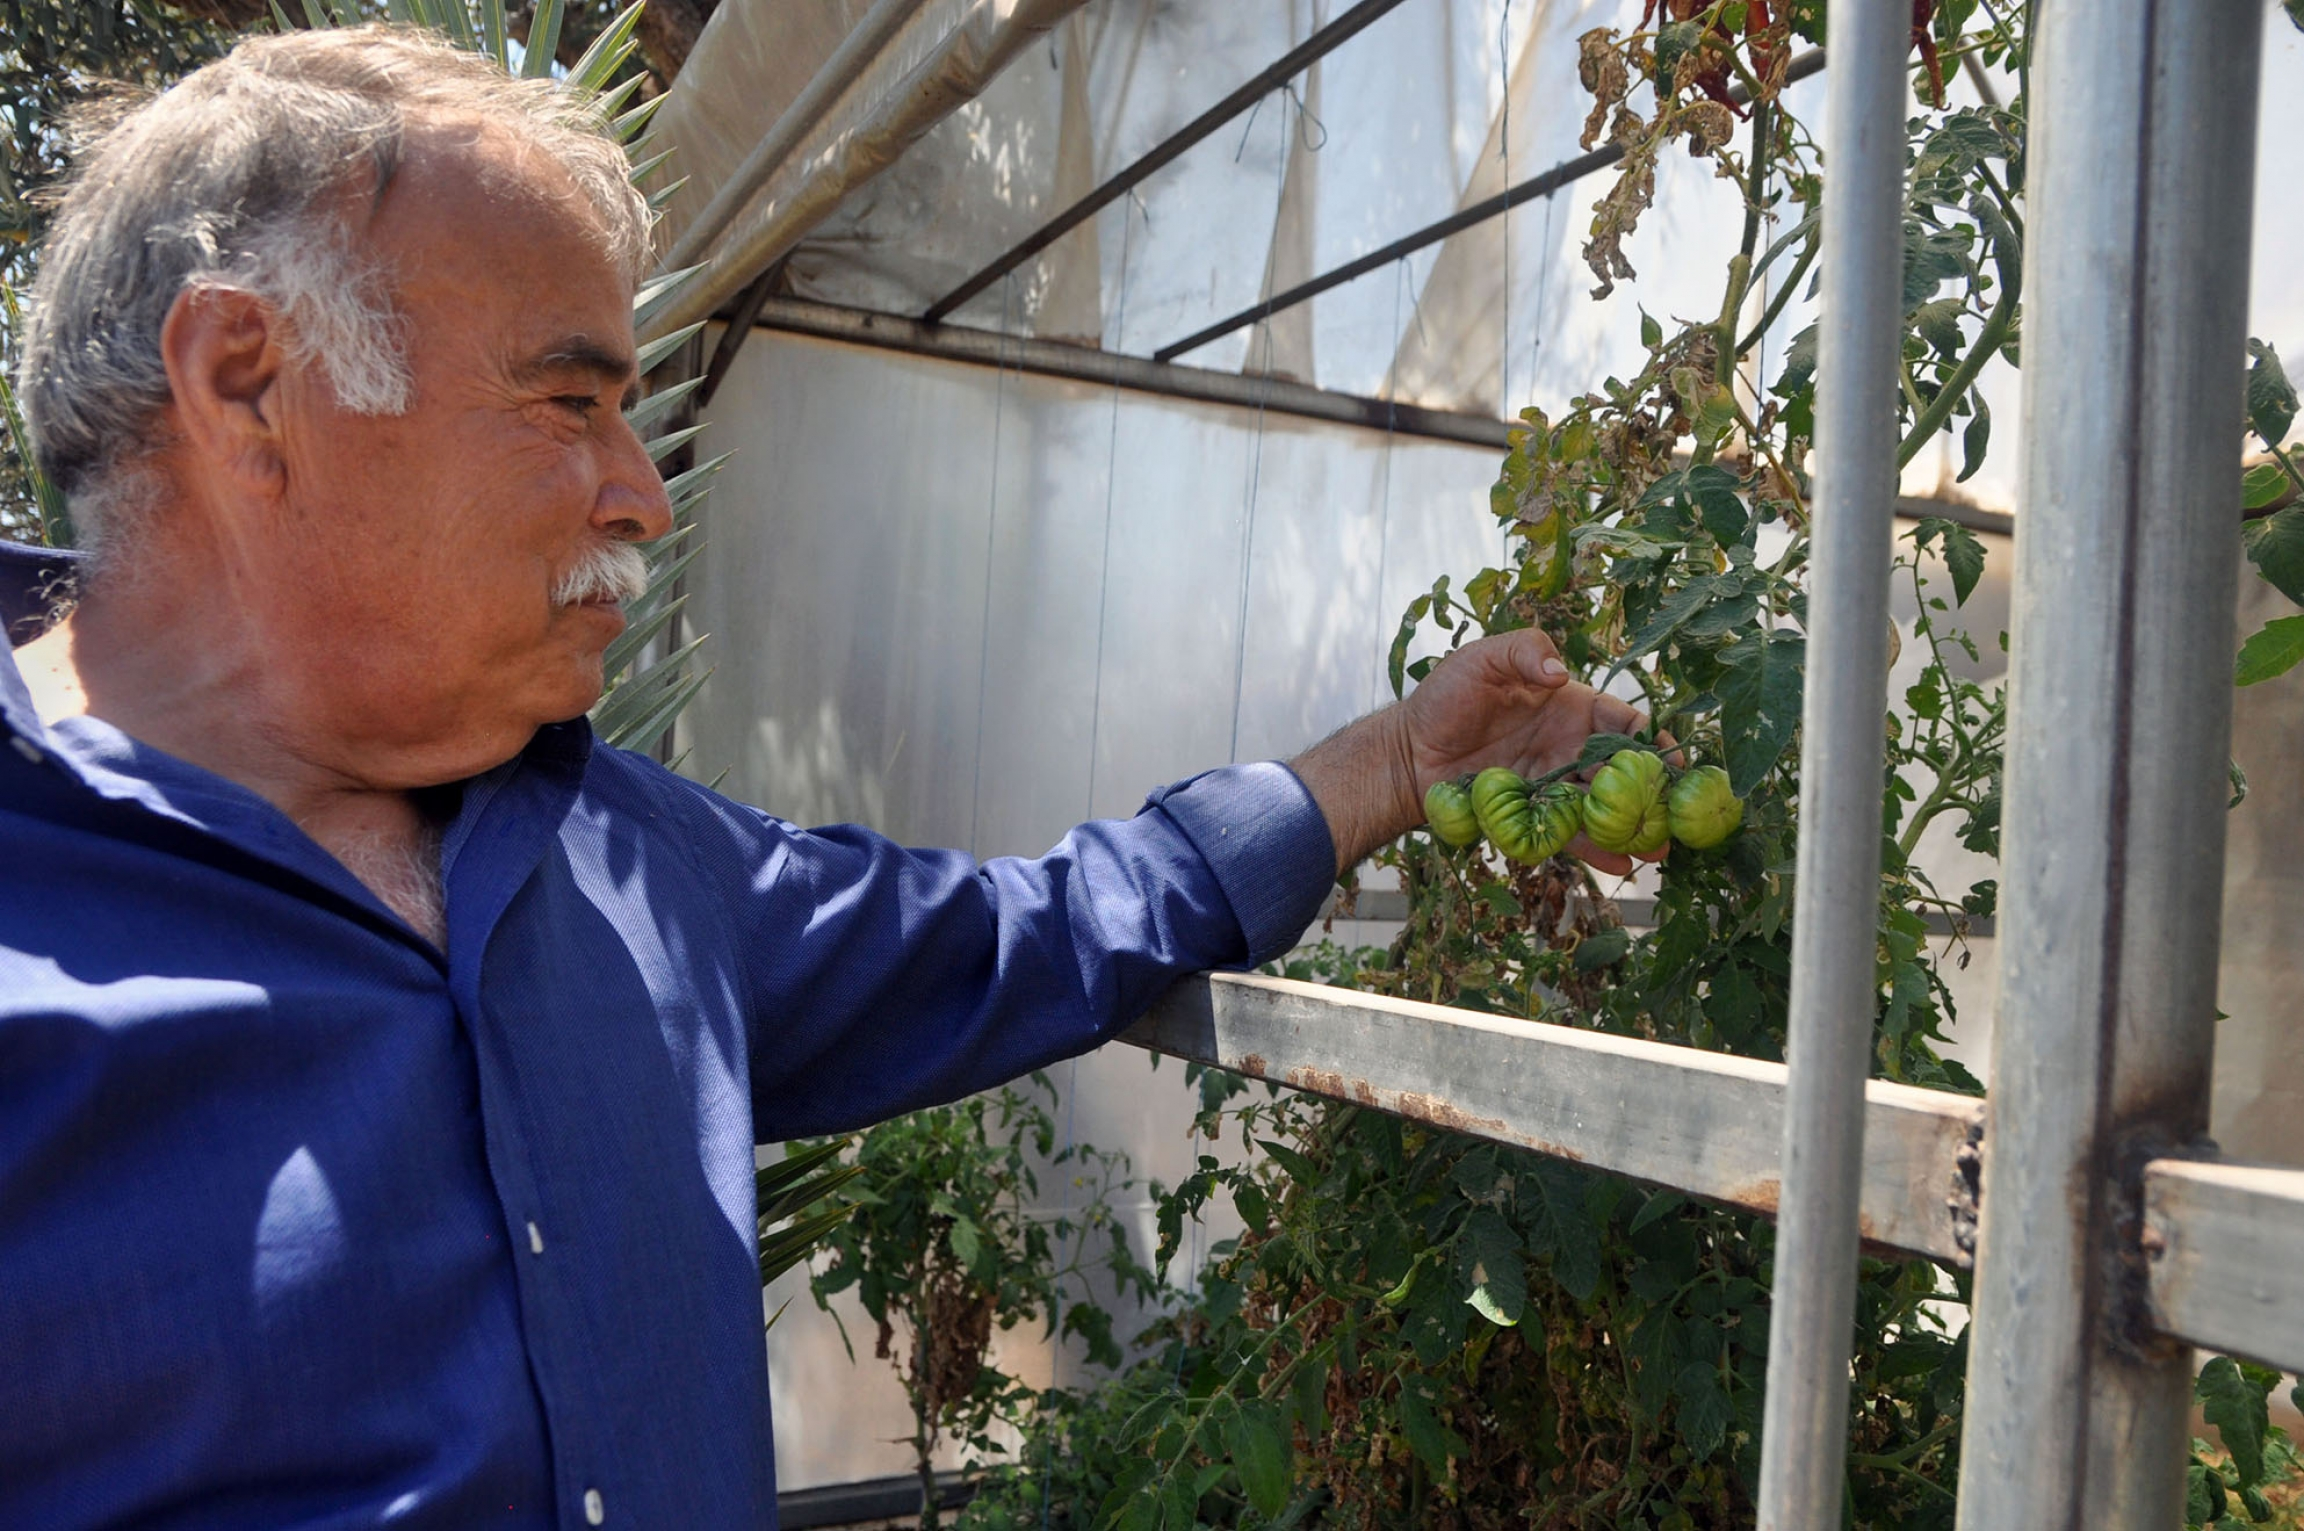 Huseyin Kara inspects an heirloom tomato variety grown in a greenhouse on his farm.